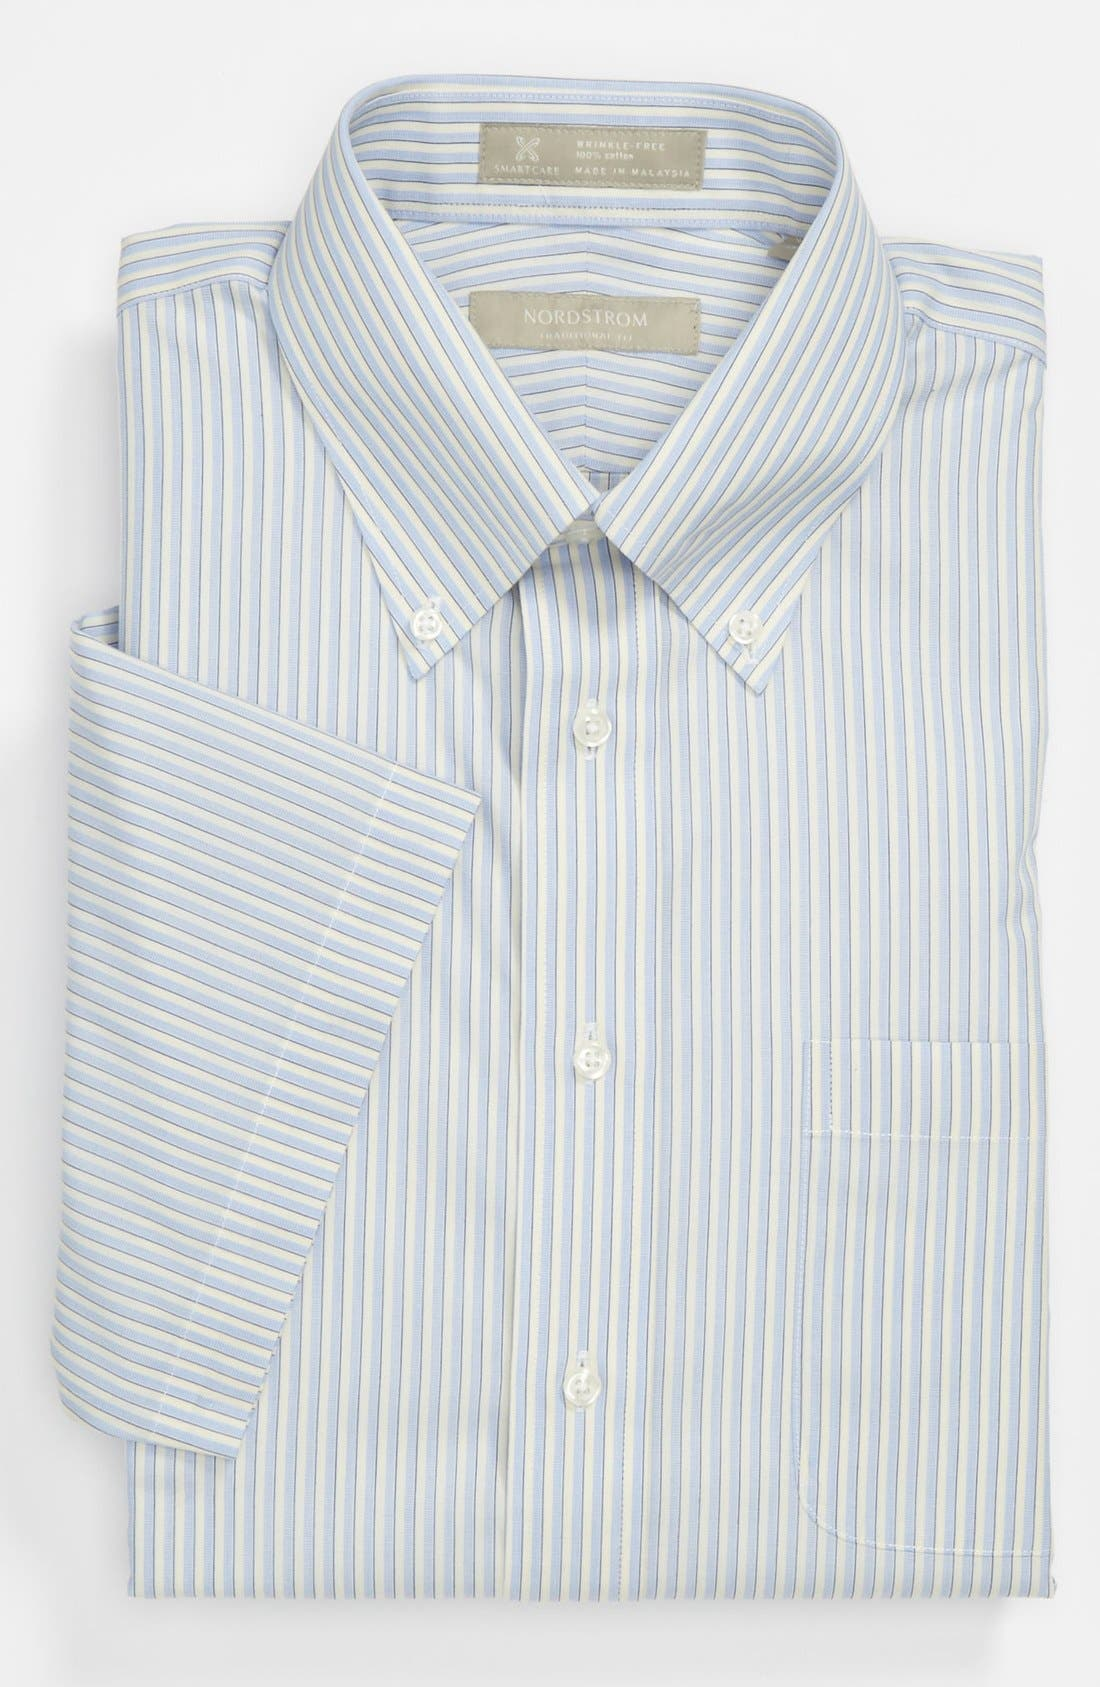 Main Image - Nordstrom Smartcare™ Wrinkle Free Traditional Fit Short Sleeve Dress Shirt (Online Only)